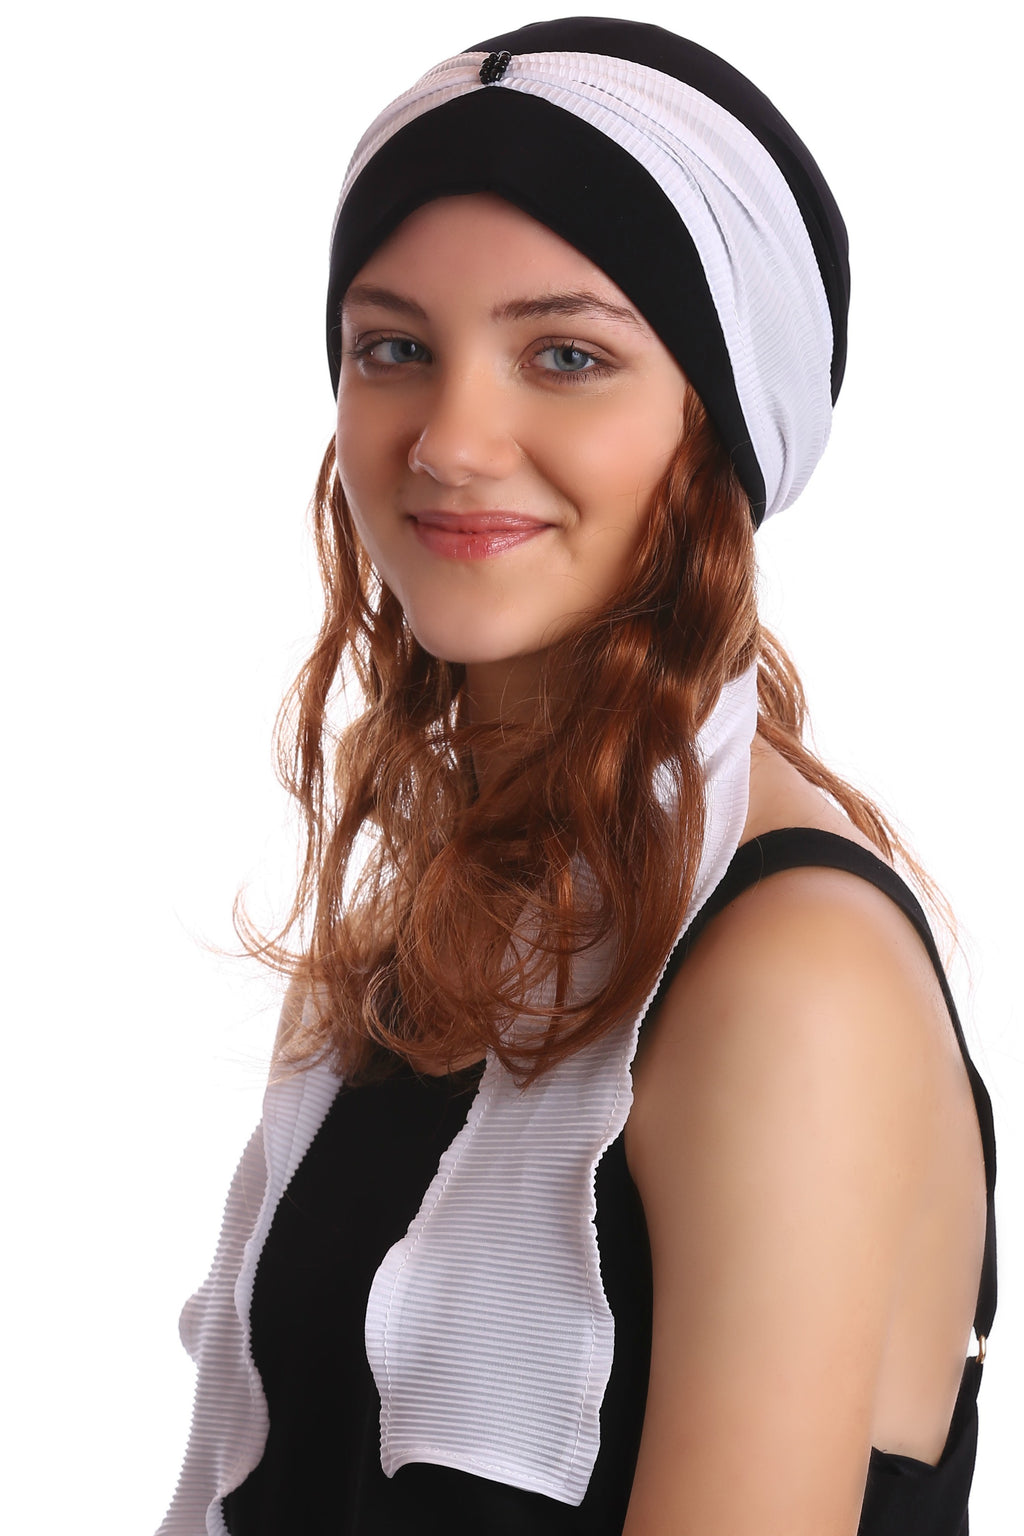 Pleated Ribbon Headwear with Hair - Black/White